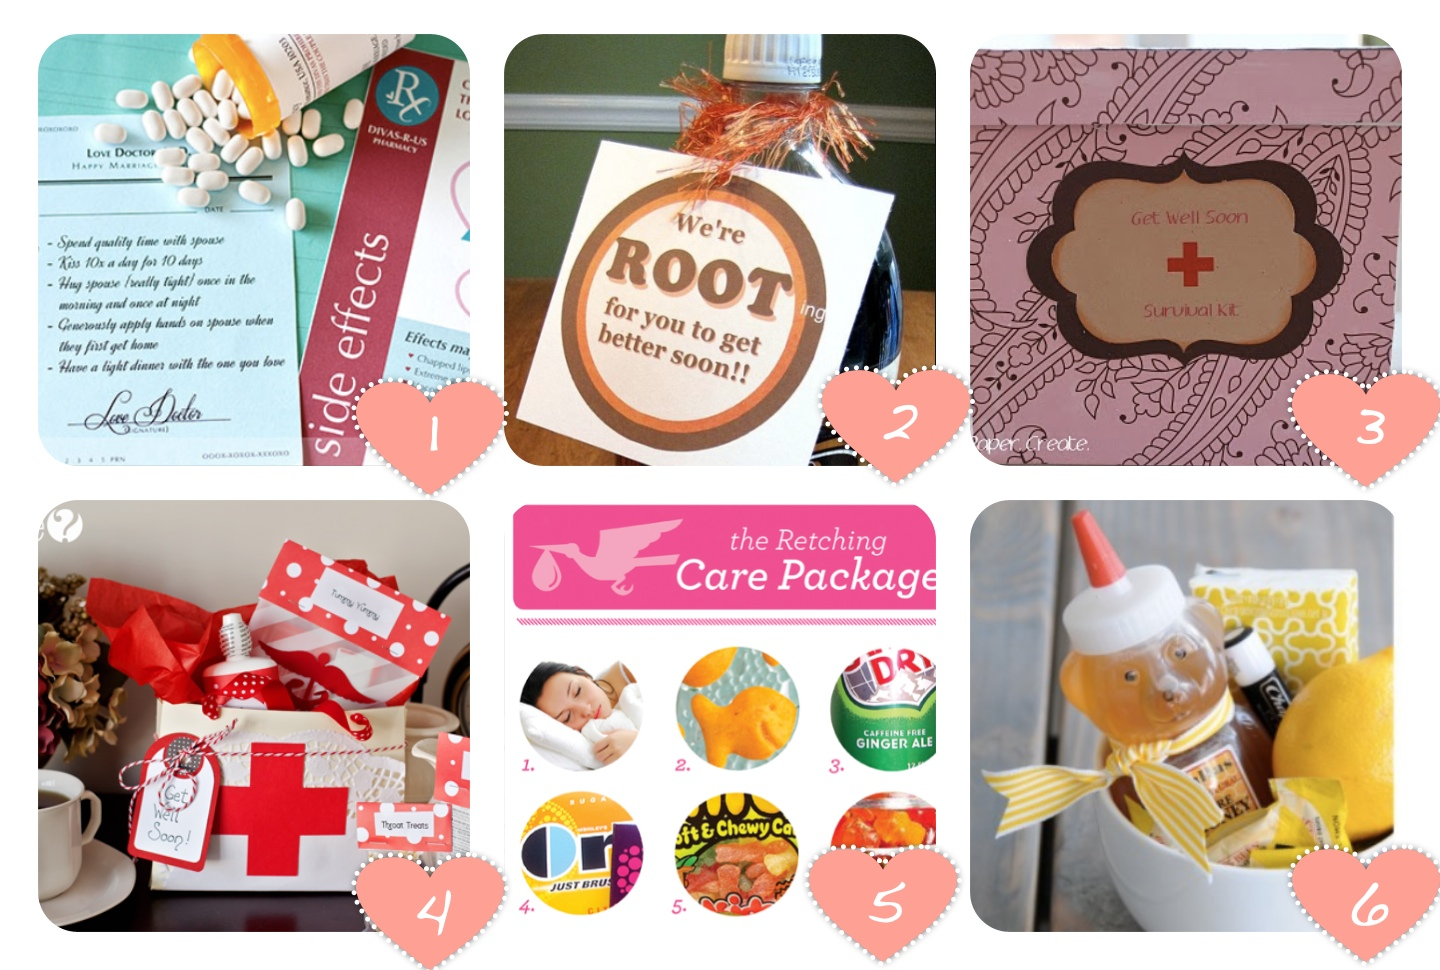 Long distance dating gift ideas 6